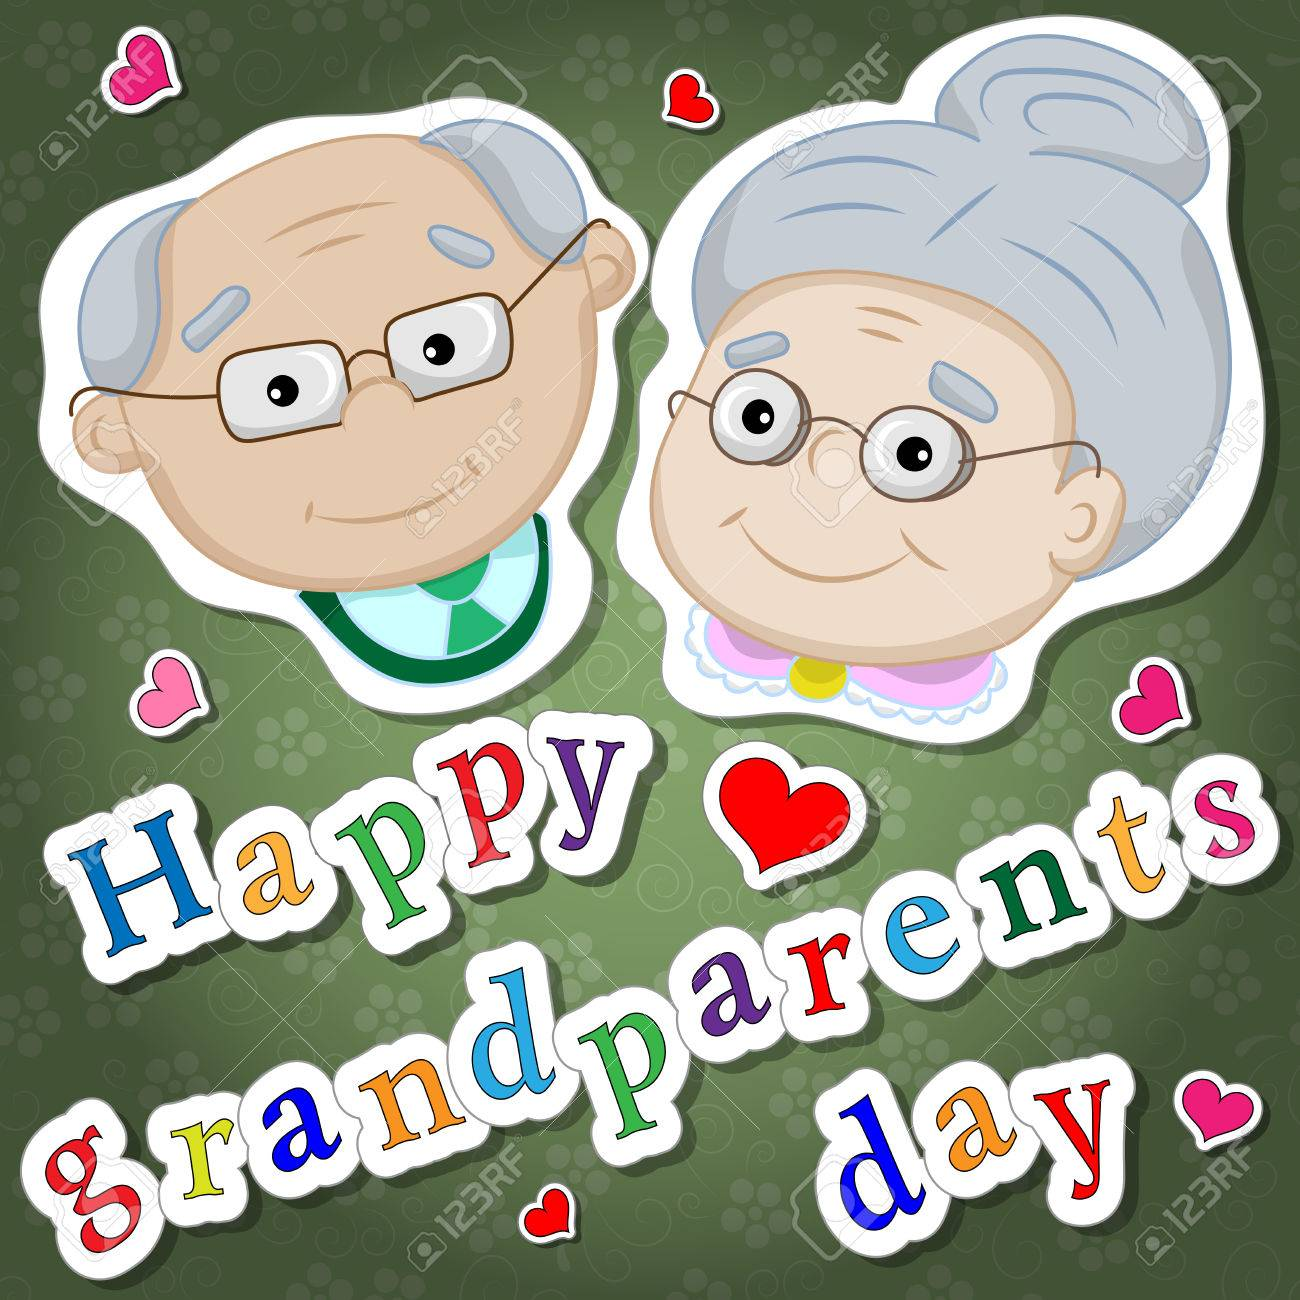 Greetings on grandparents day with the phrase and face of greetings on grandparents day with the phrase and face of grandparents stock vector 58467253 kristyandbryce Gallery